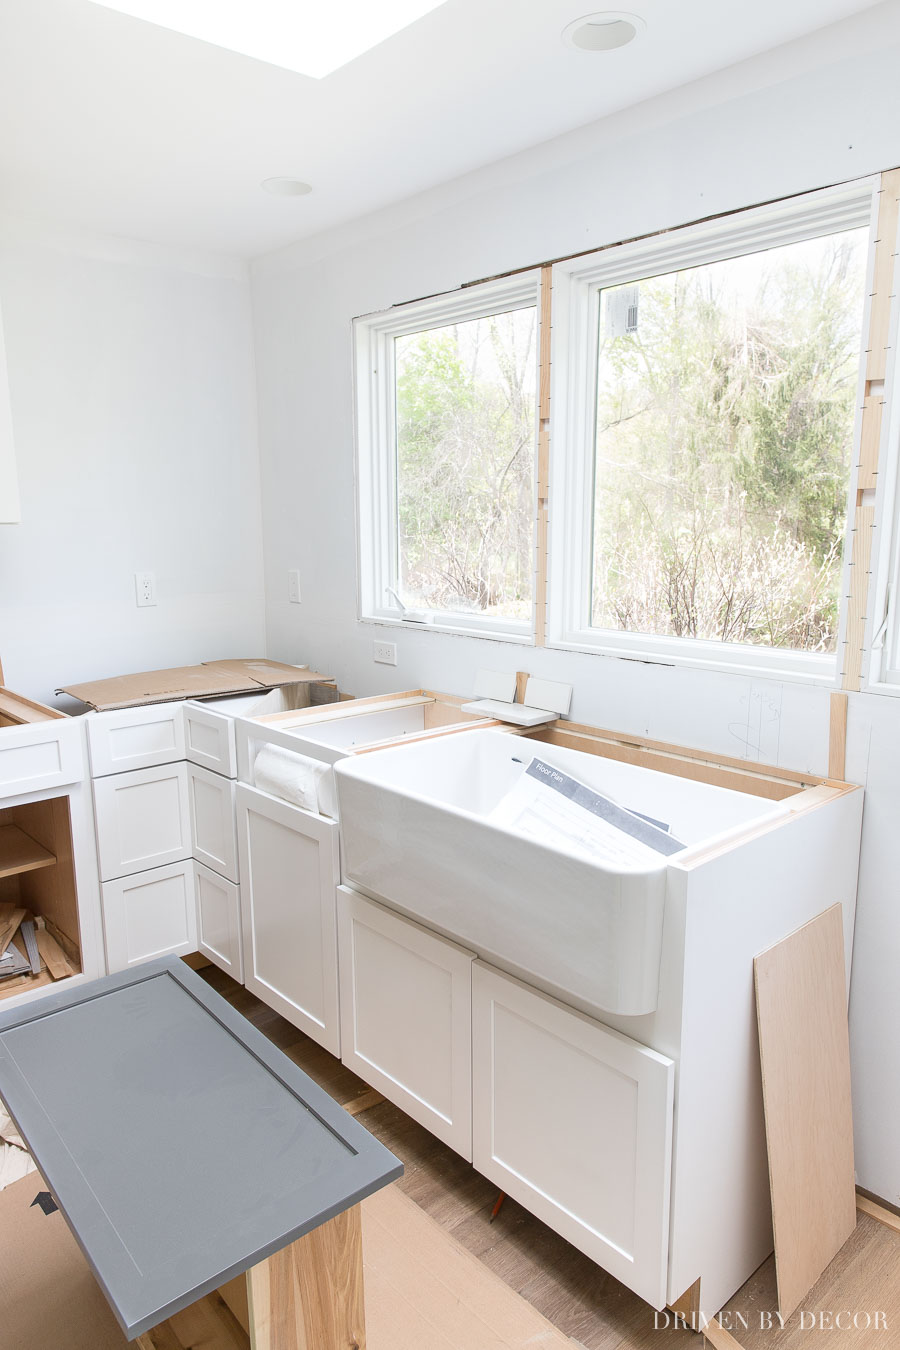 Dreamy farmhouse kitchen sink in front of large window - love!